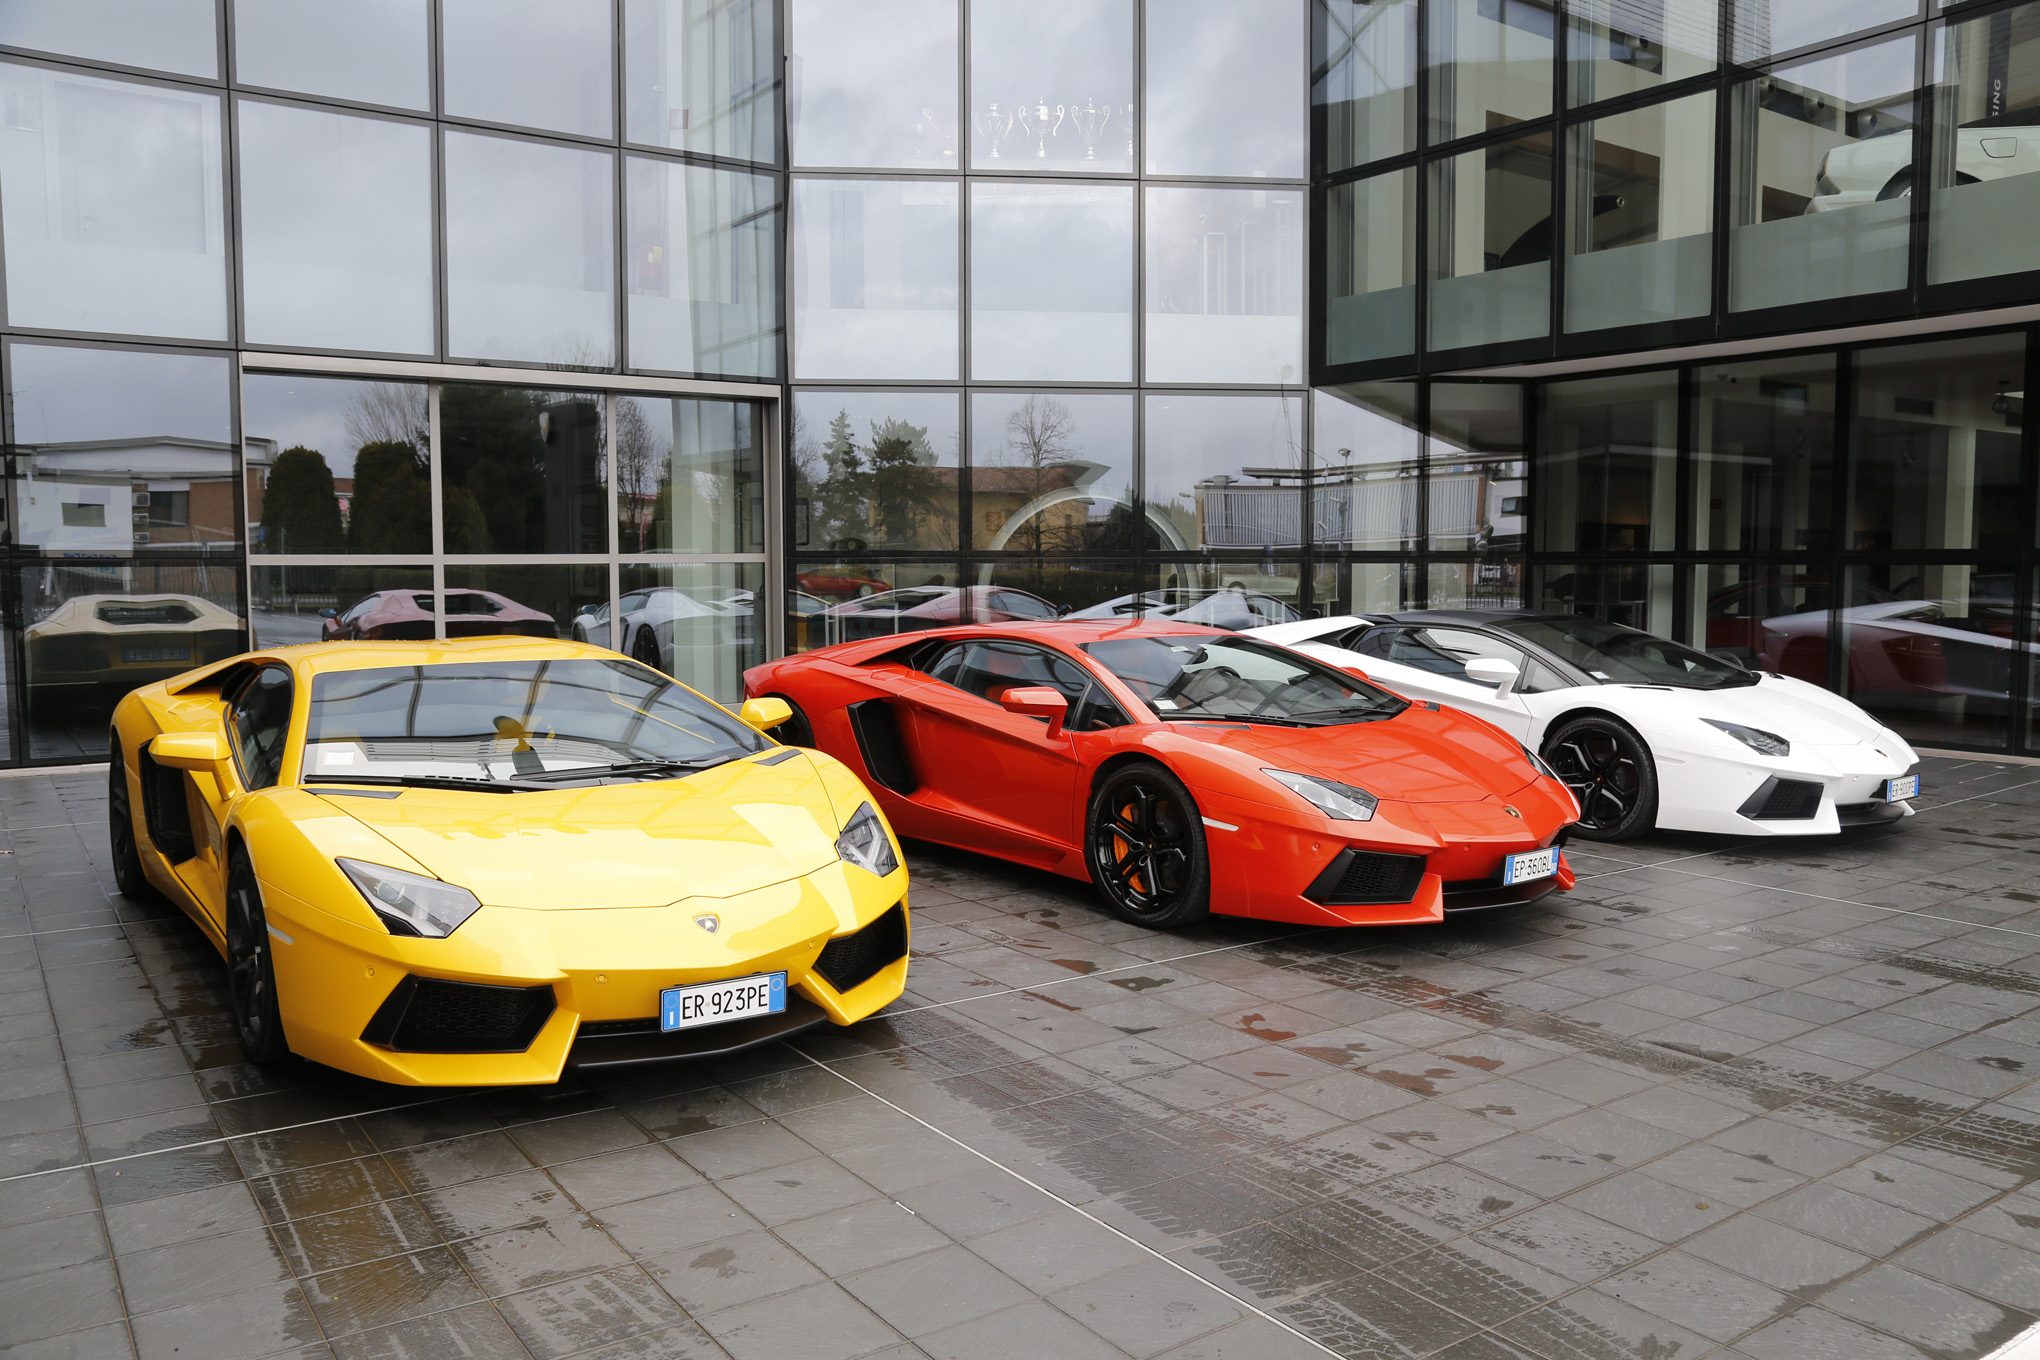 Lamborghini Aventador Road Trip A Bull For All Seasons Motortrend